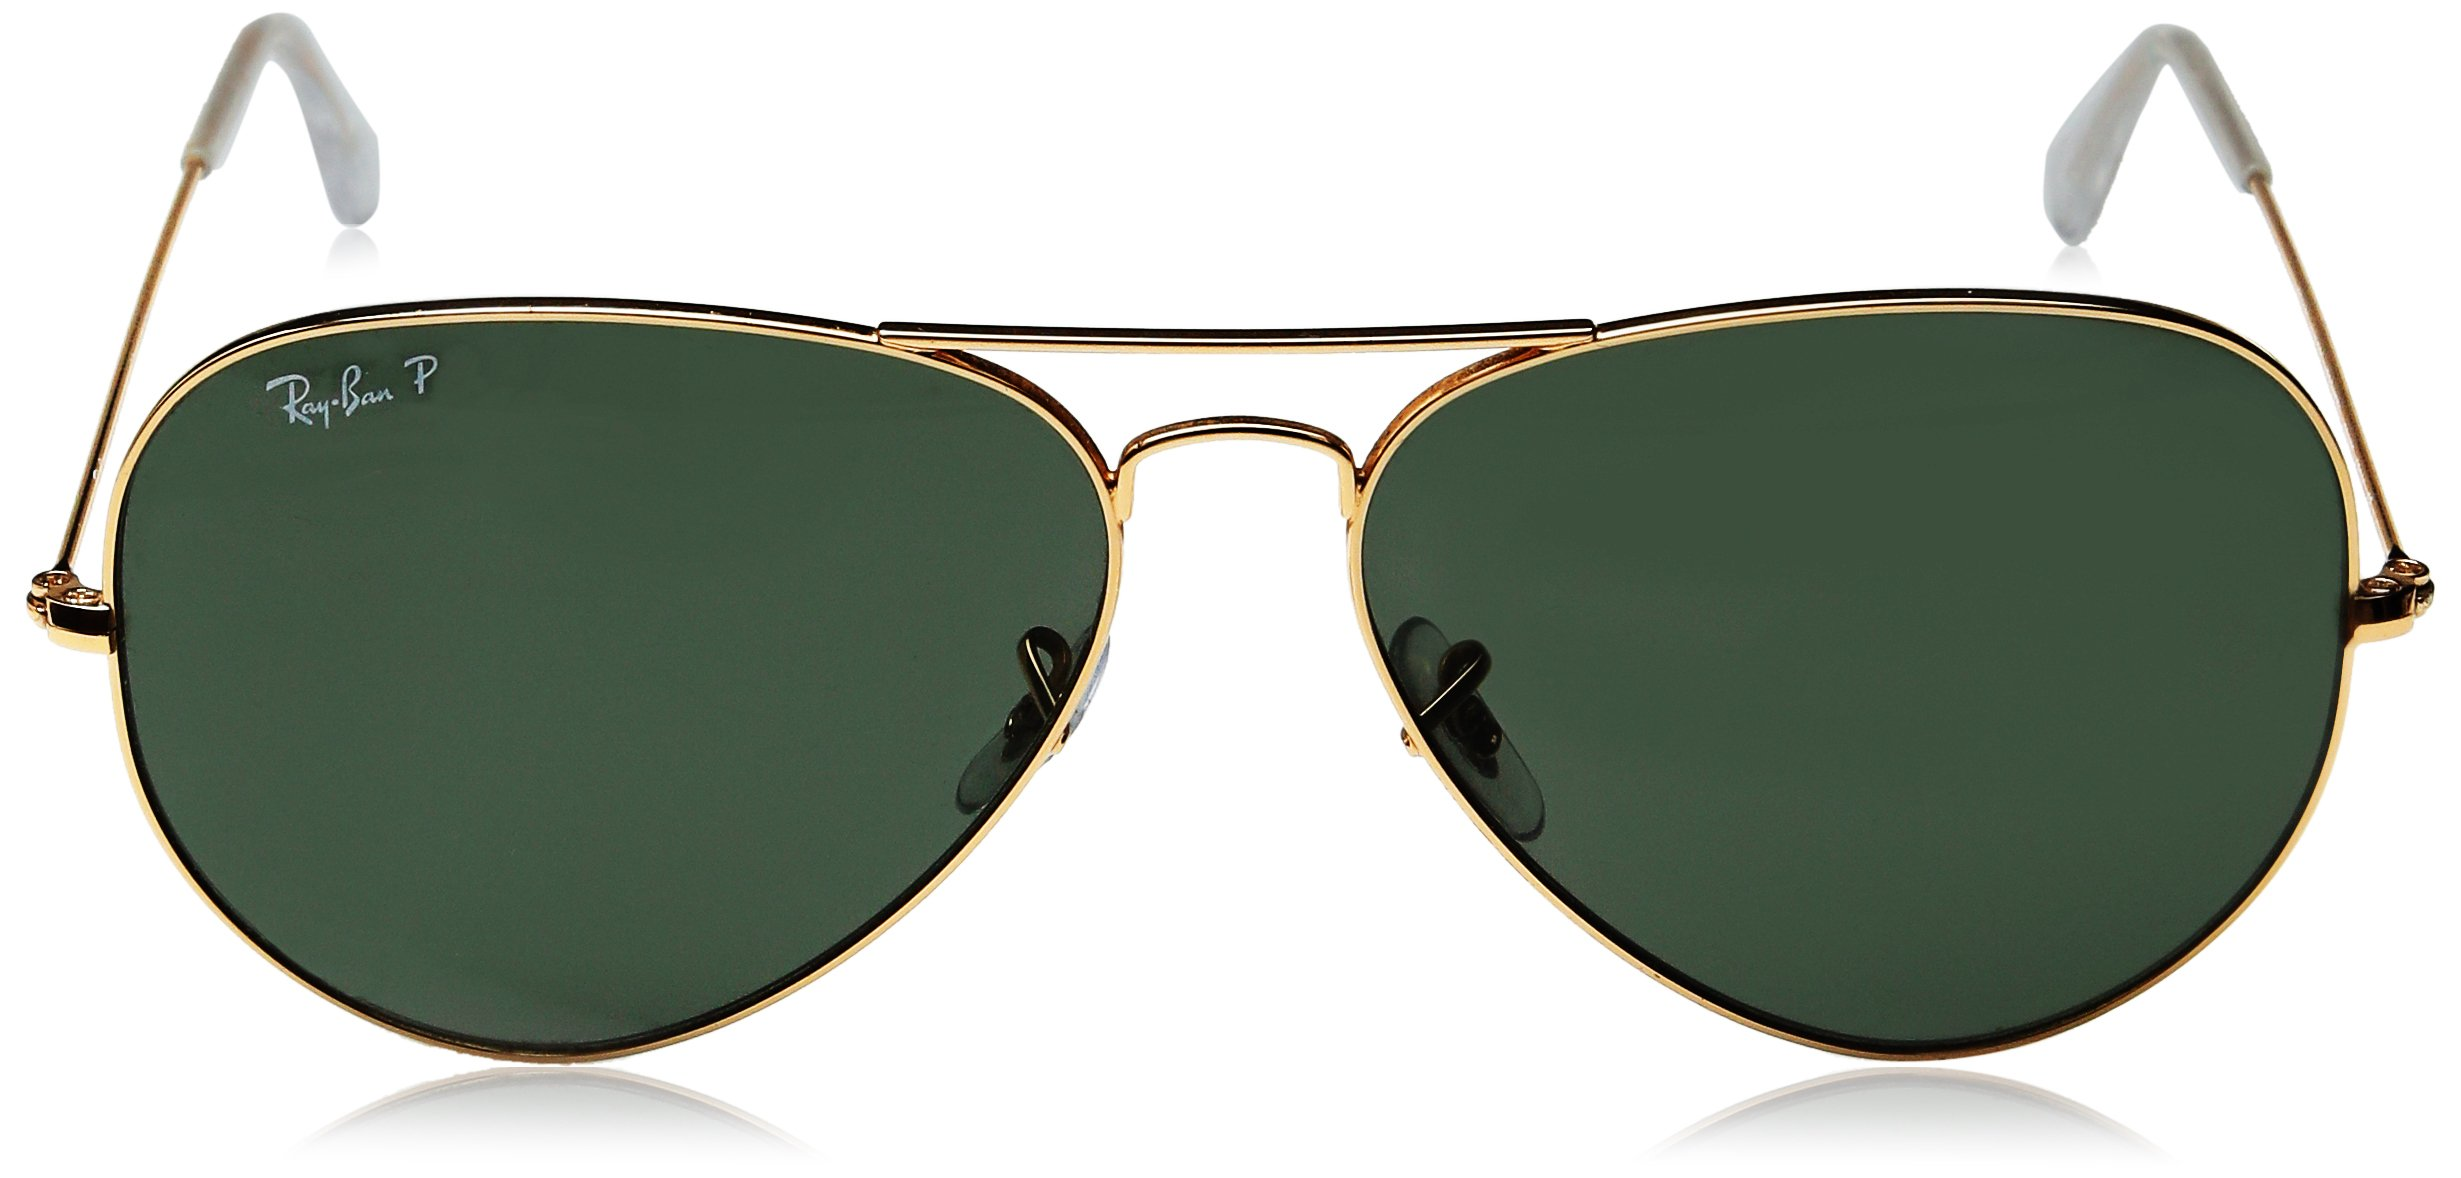 Ray-Ban 3025 Aviator Large Metal Non-Mirrored Polarized Sunglasses, Gold/Green, 62mm by Ray-Ban (Image #2)